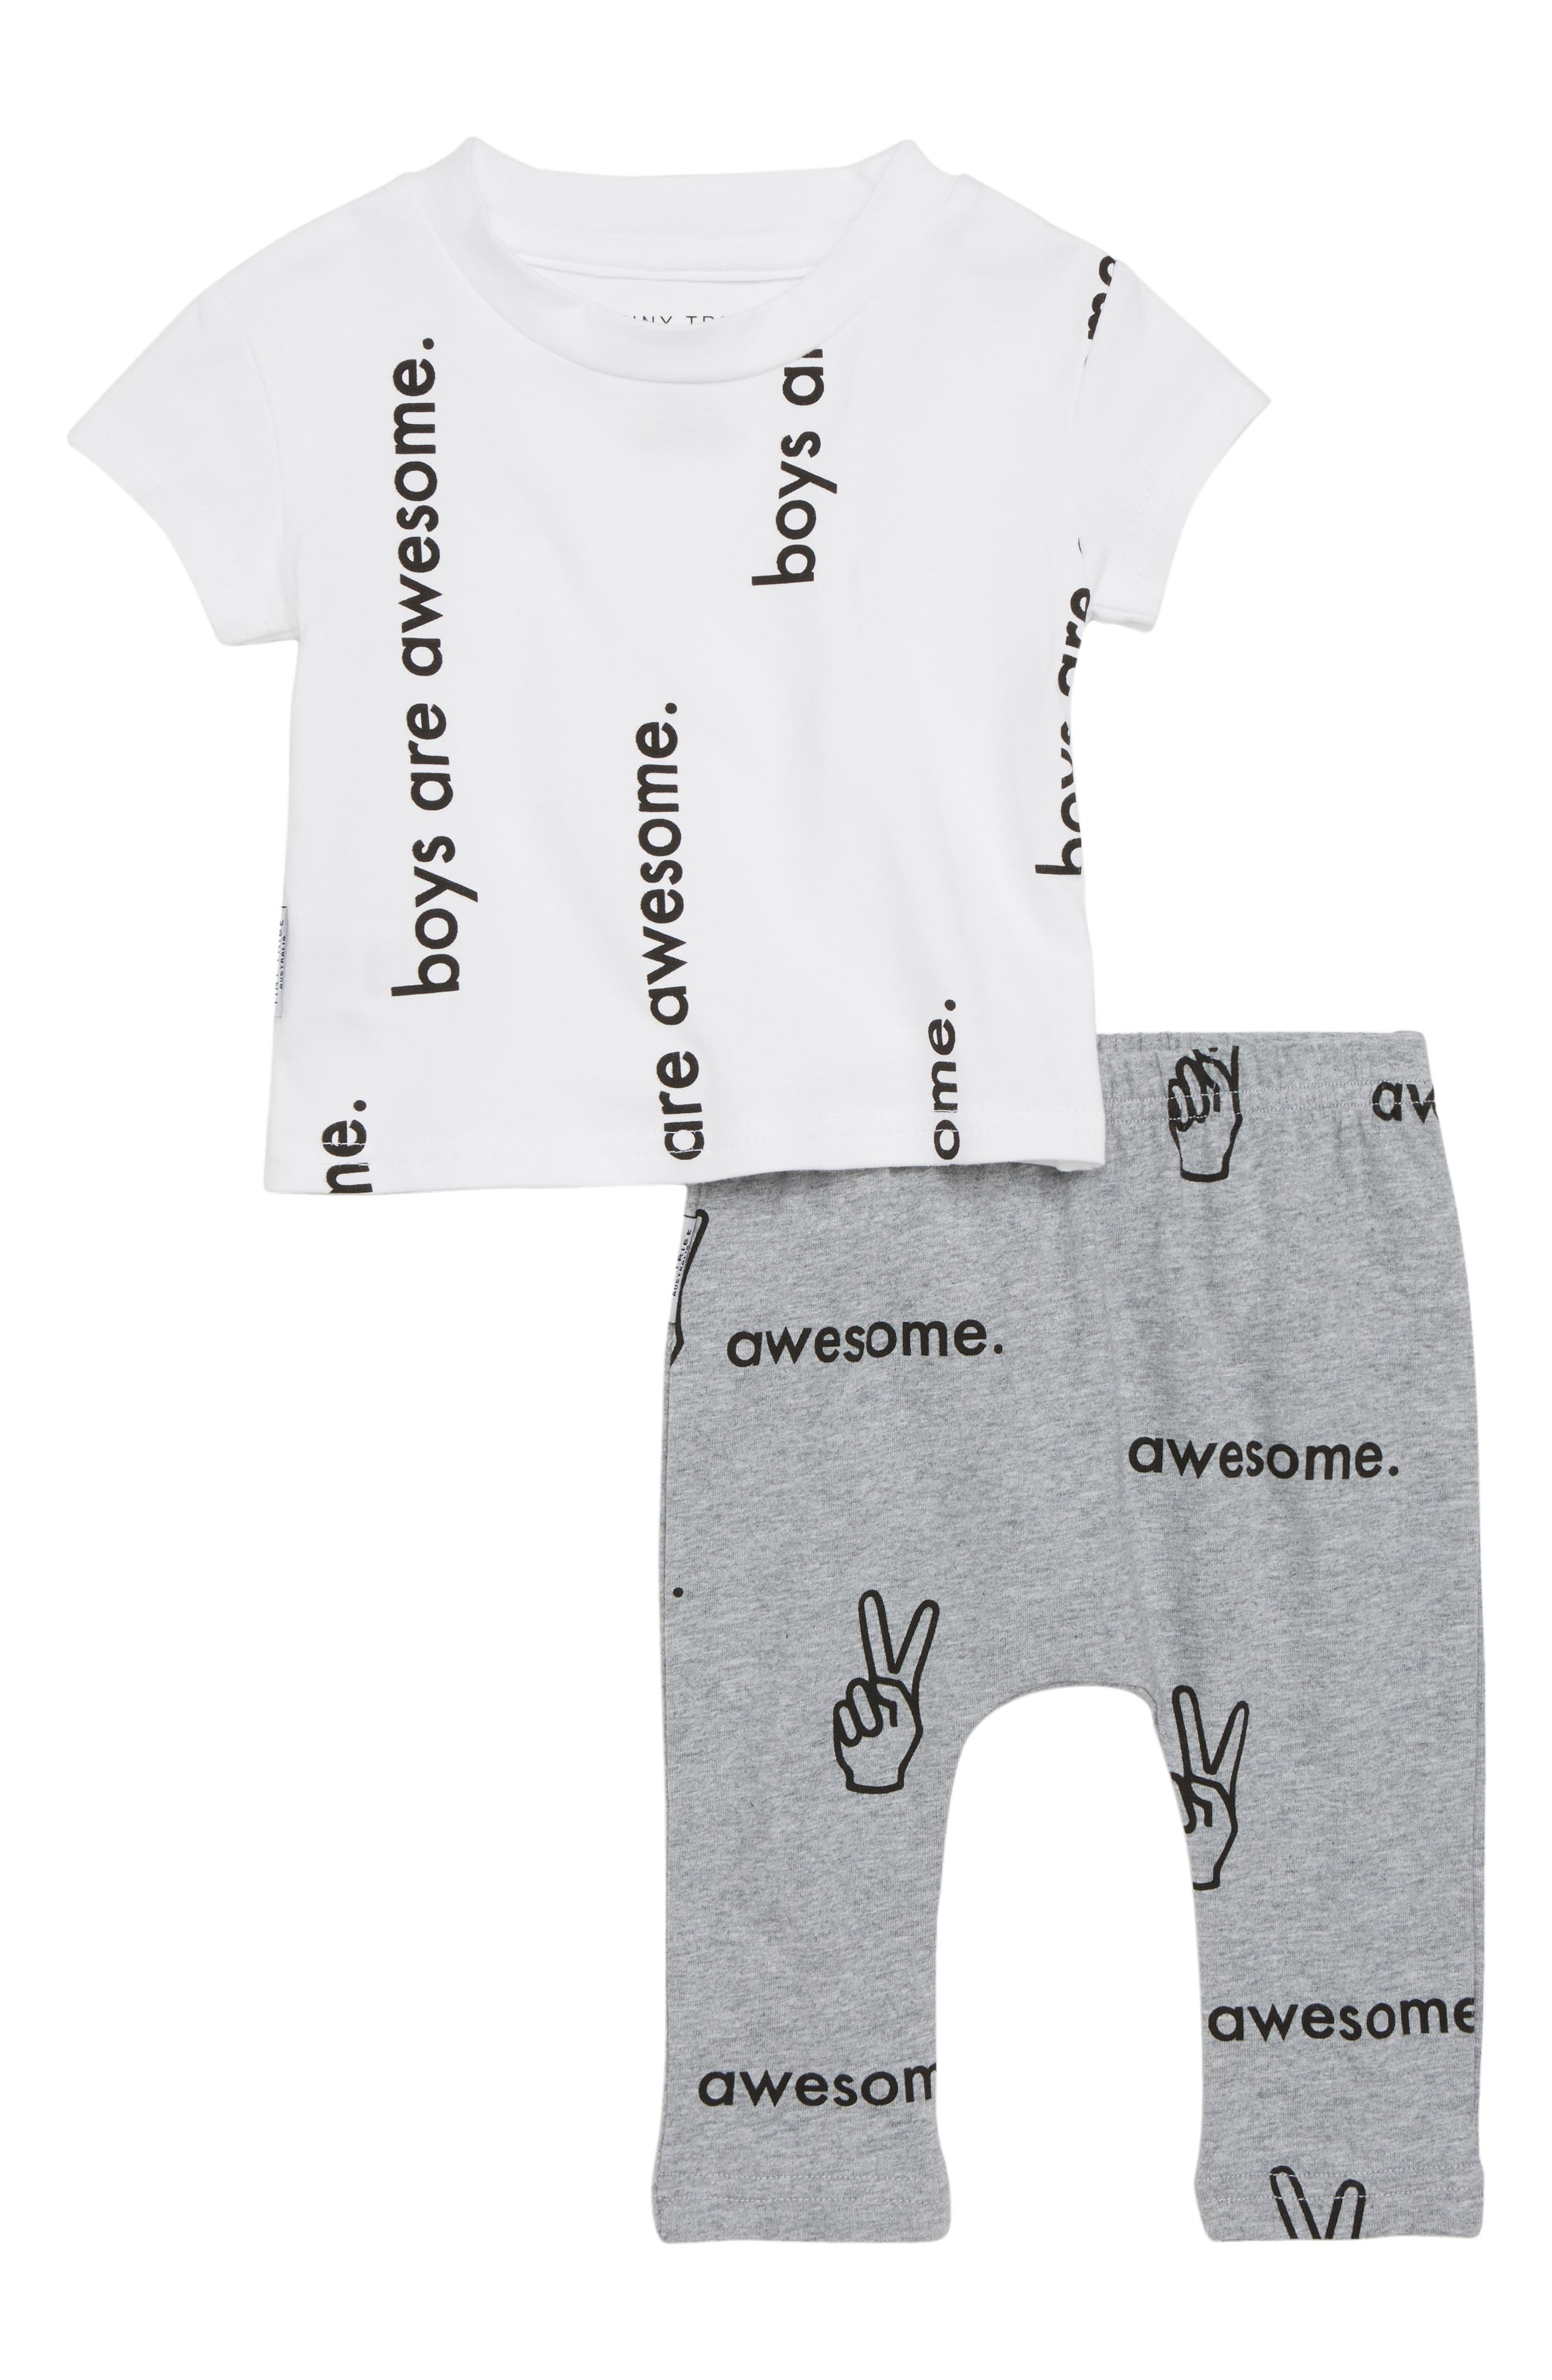 Boys are Awesome Graphic T-Shirt & Pants Set,                         Main,                         color, White/ Grey